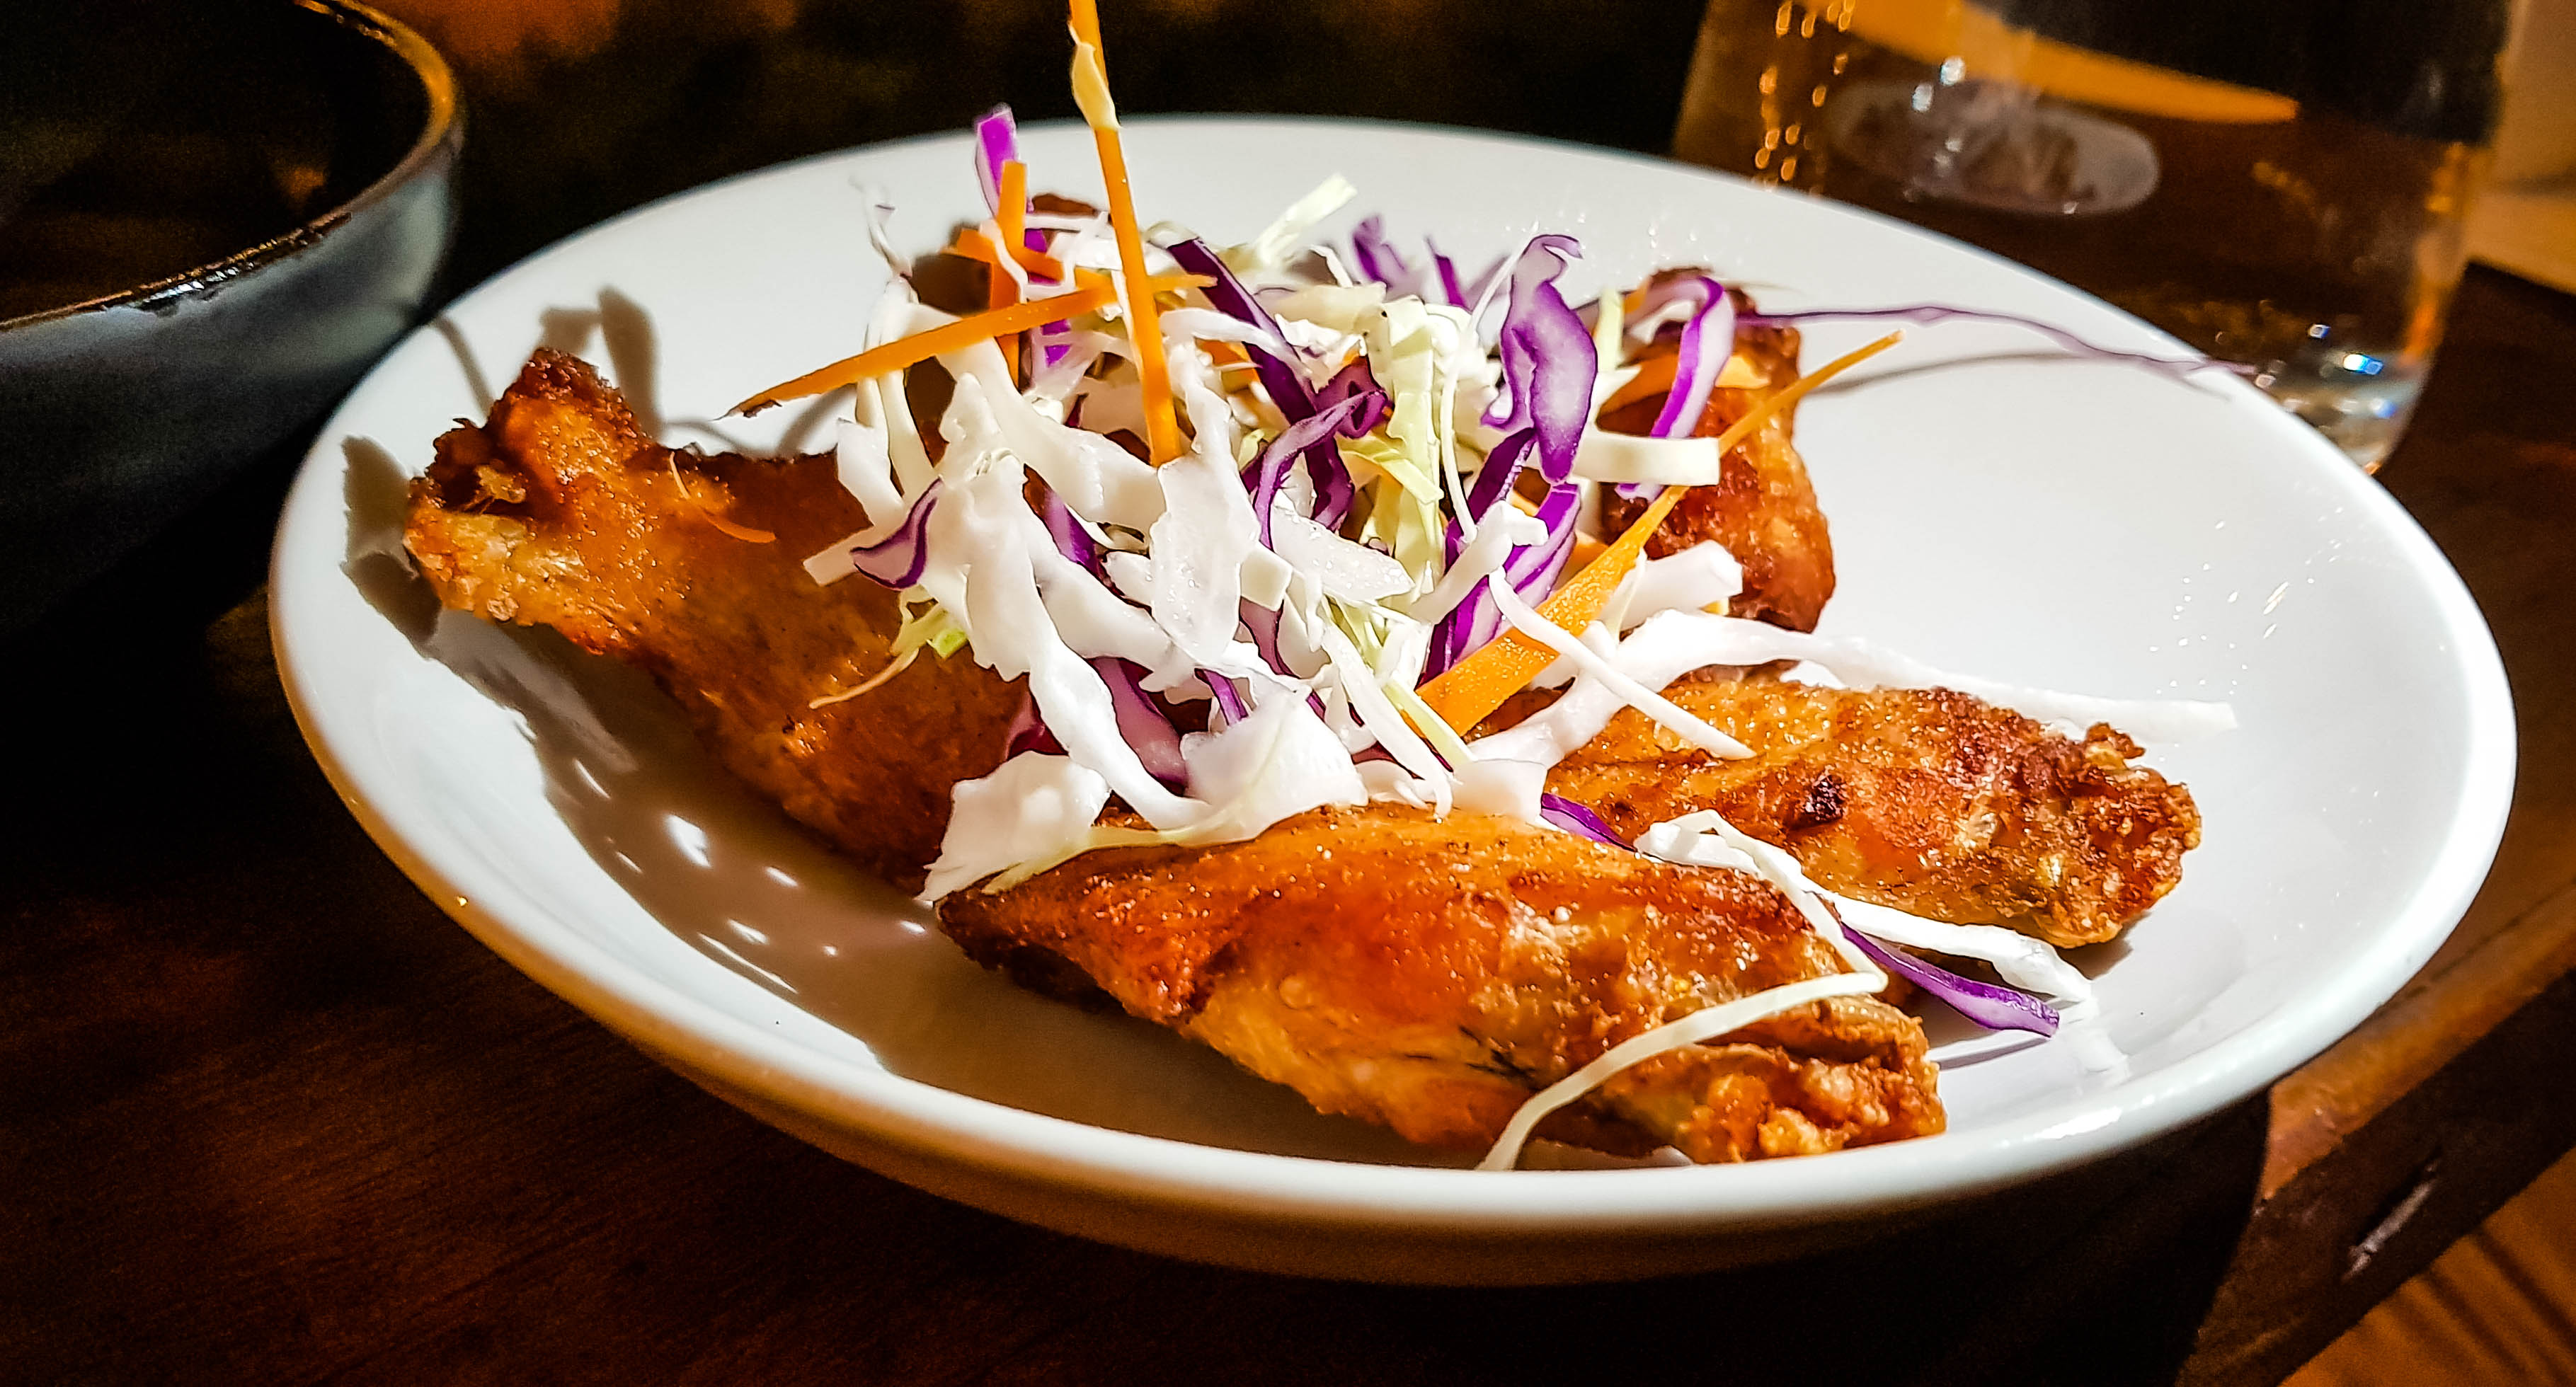 Plate of chicken wings and coleslaw